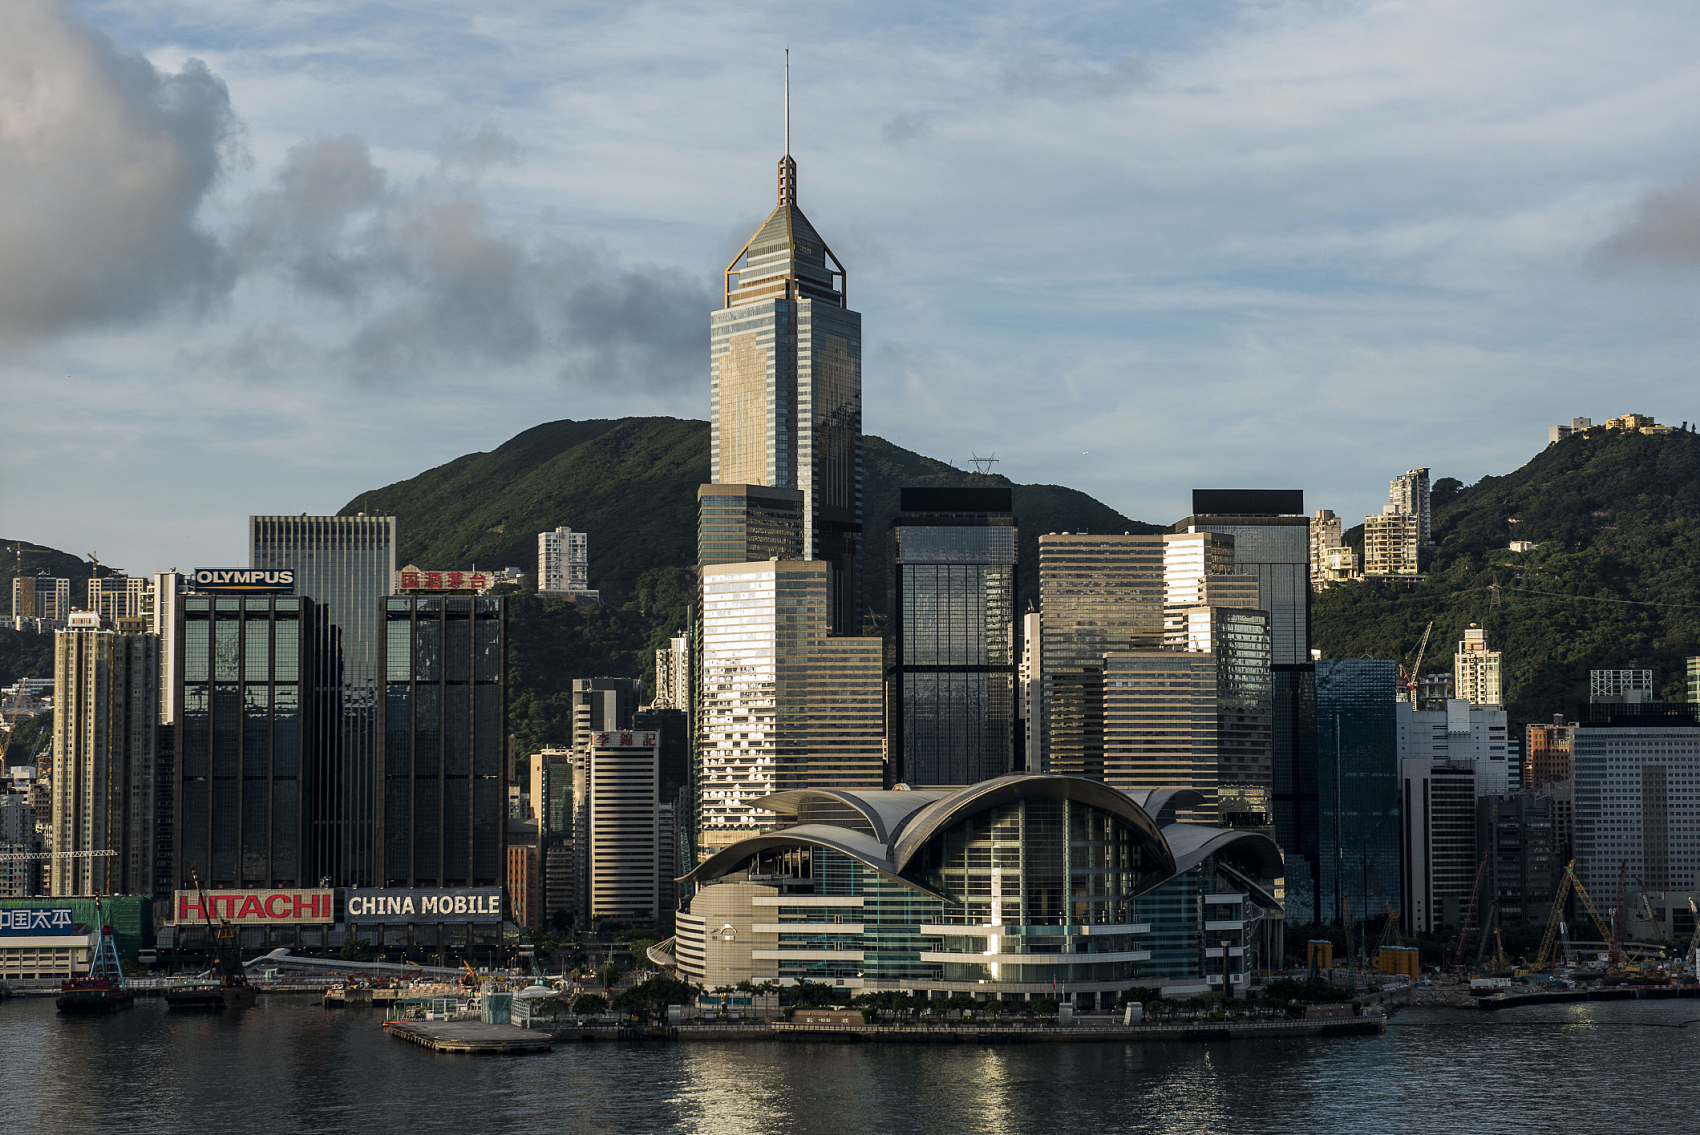 HK people look forward to implementation of law on safeguarding national security